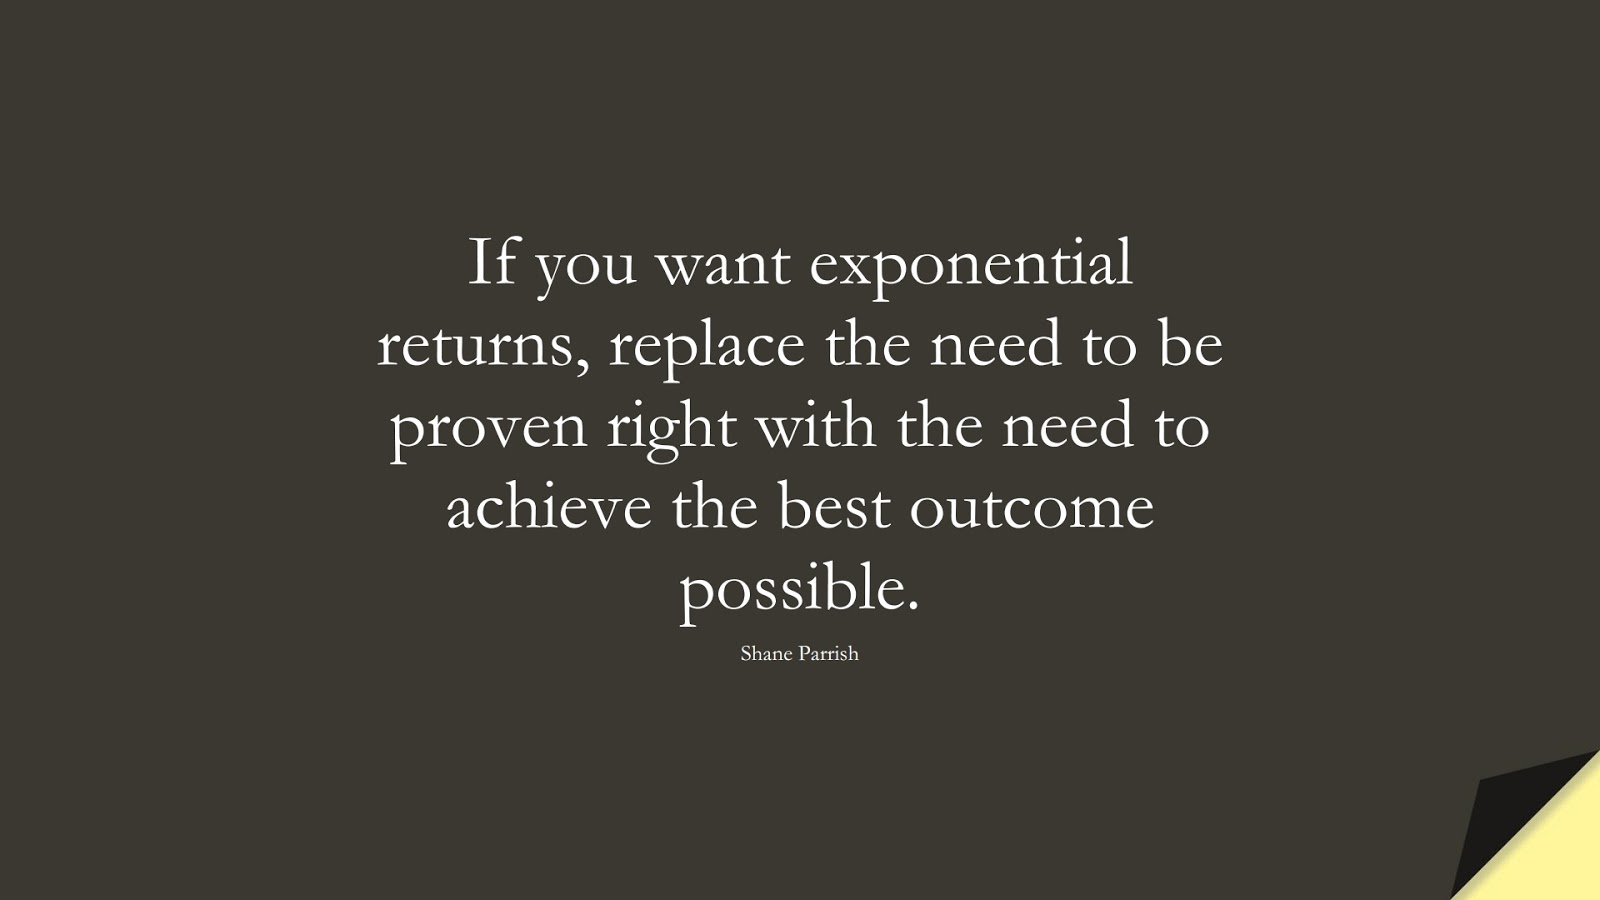 If you want exponential returns, replace the need to be proven right with the need to achieve the best outcome possible. (Shane Parrish);  #BestQuotes